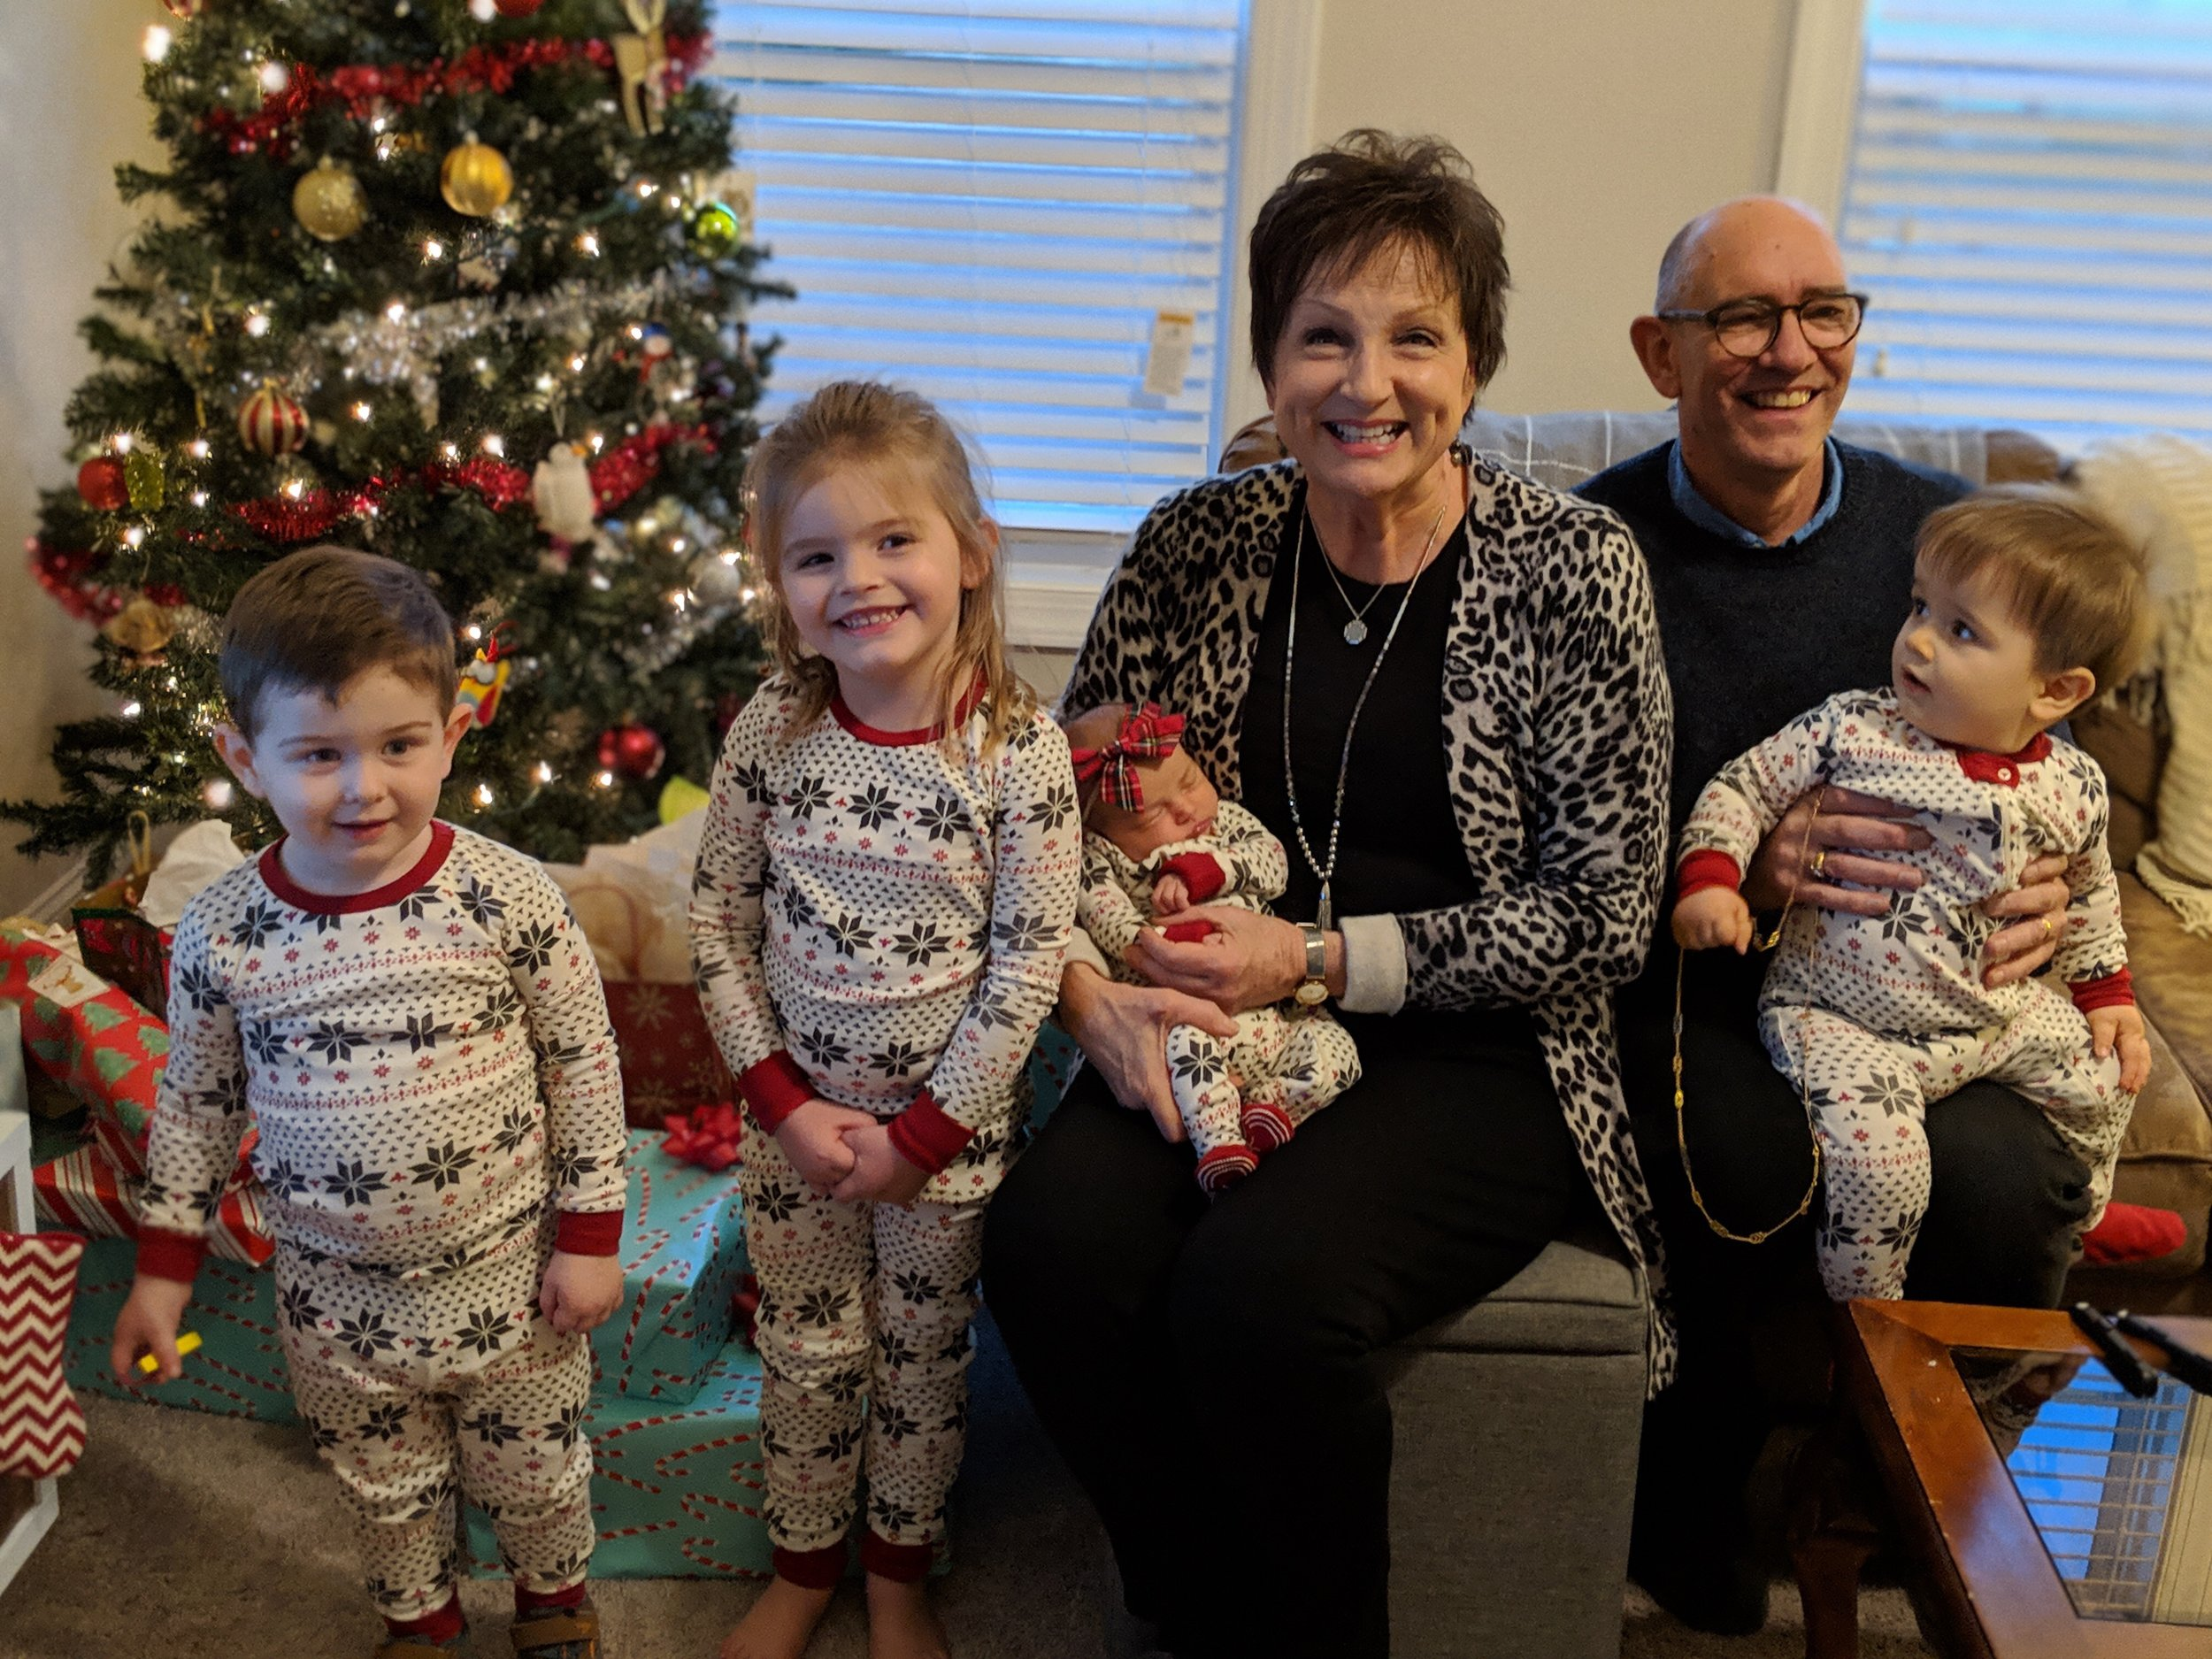 Jim & Nancy with their four grandchildren (left to right: Henry, Eve, Lucy and Jack)